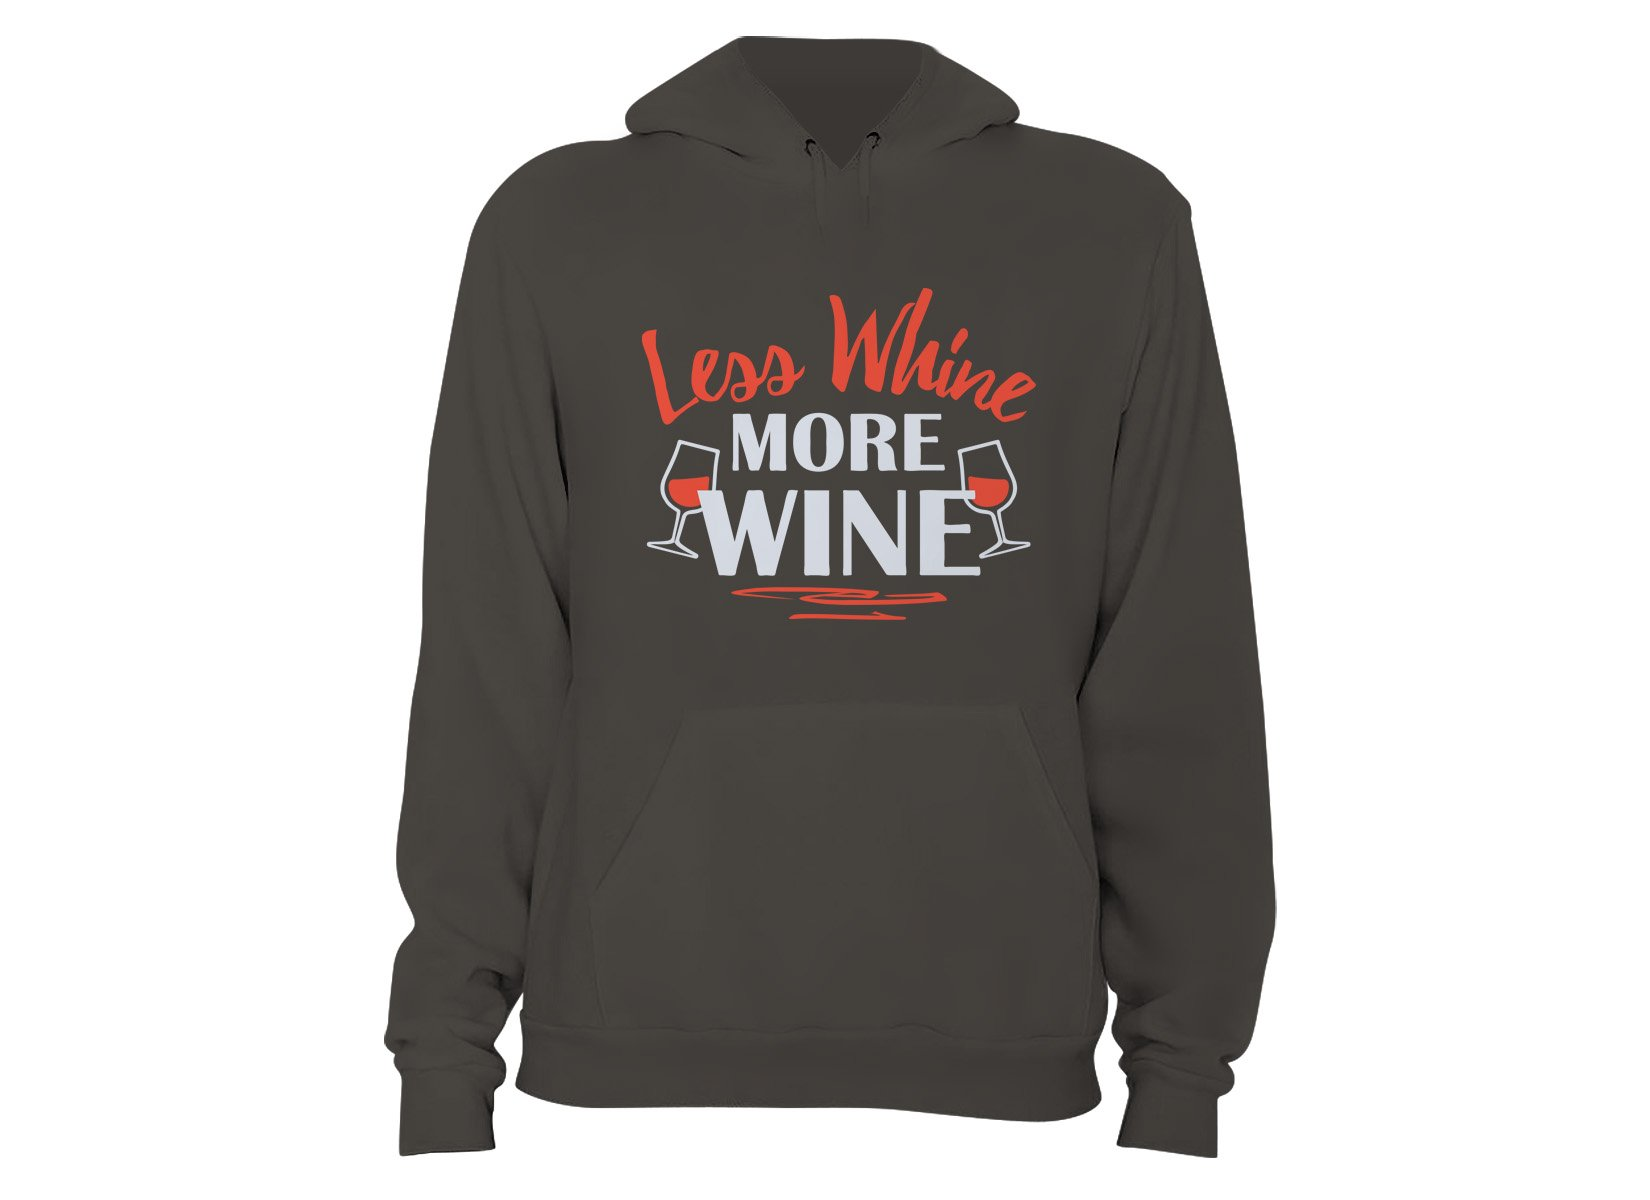 Less Whine More Wine on Hoodie